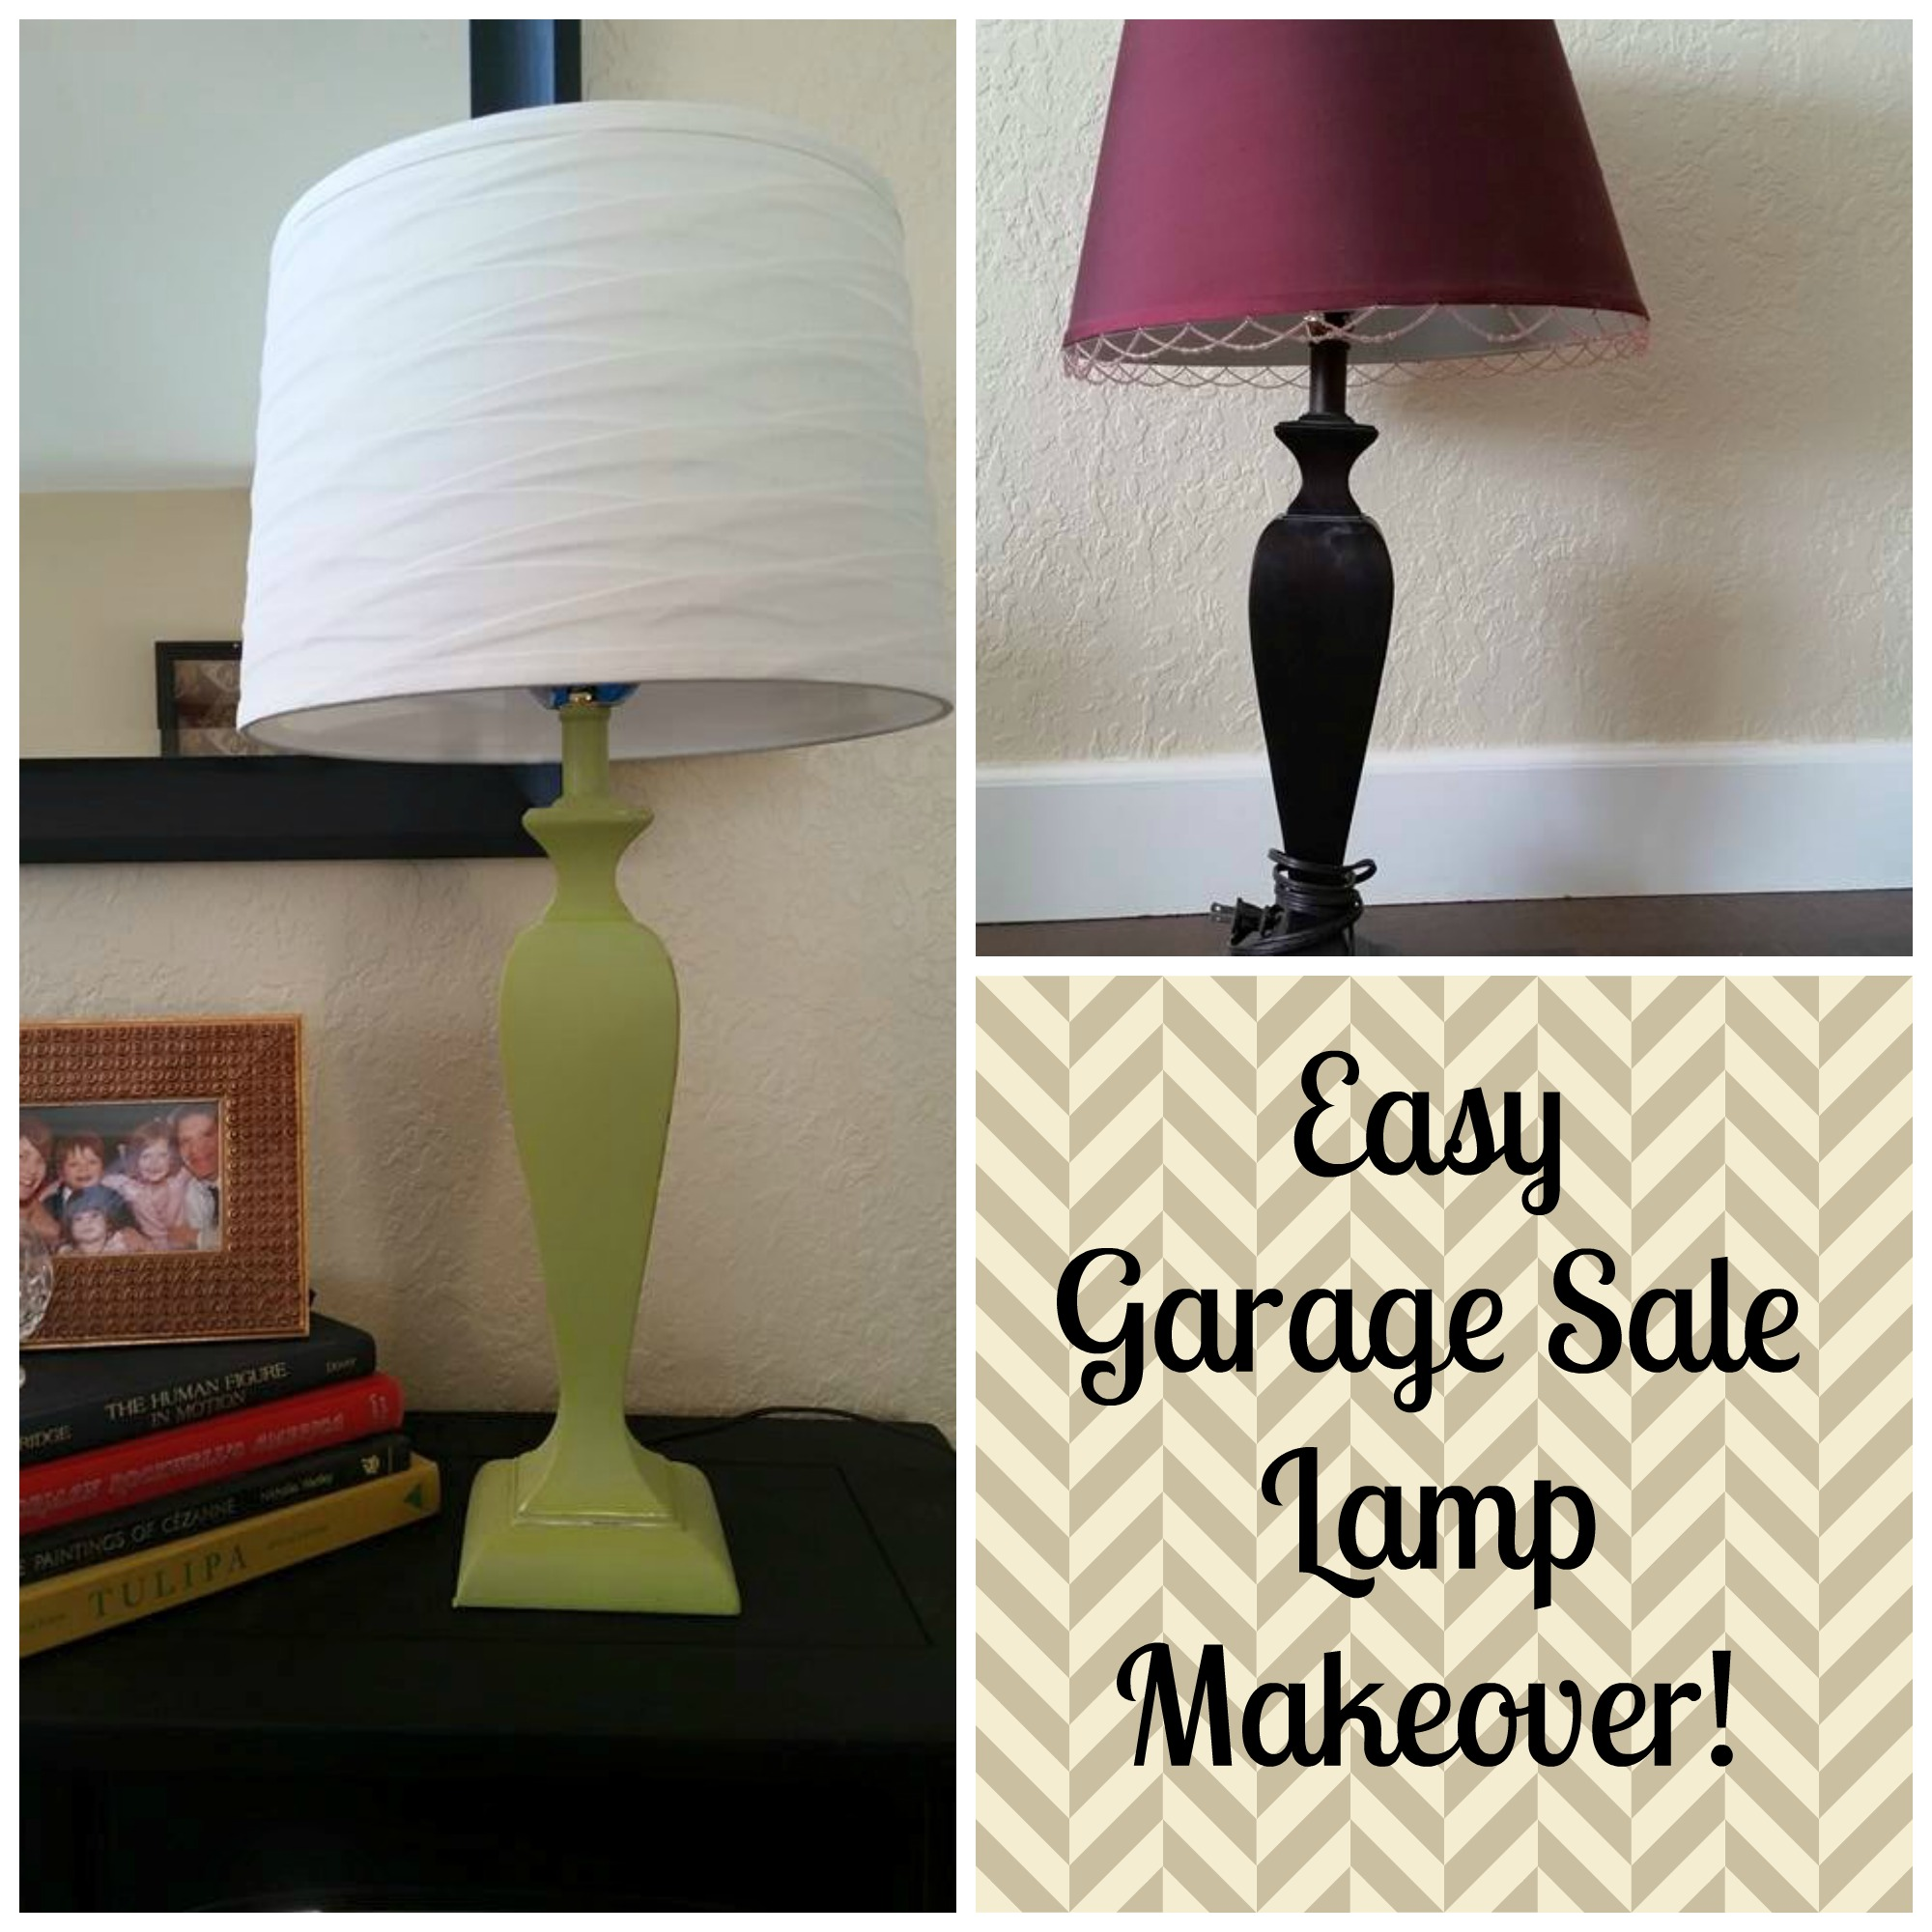 Garage Sale Lamp Makeover!